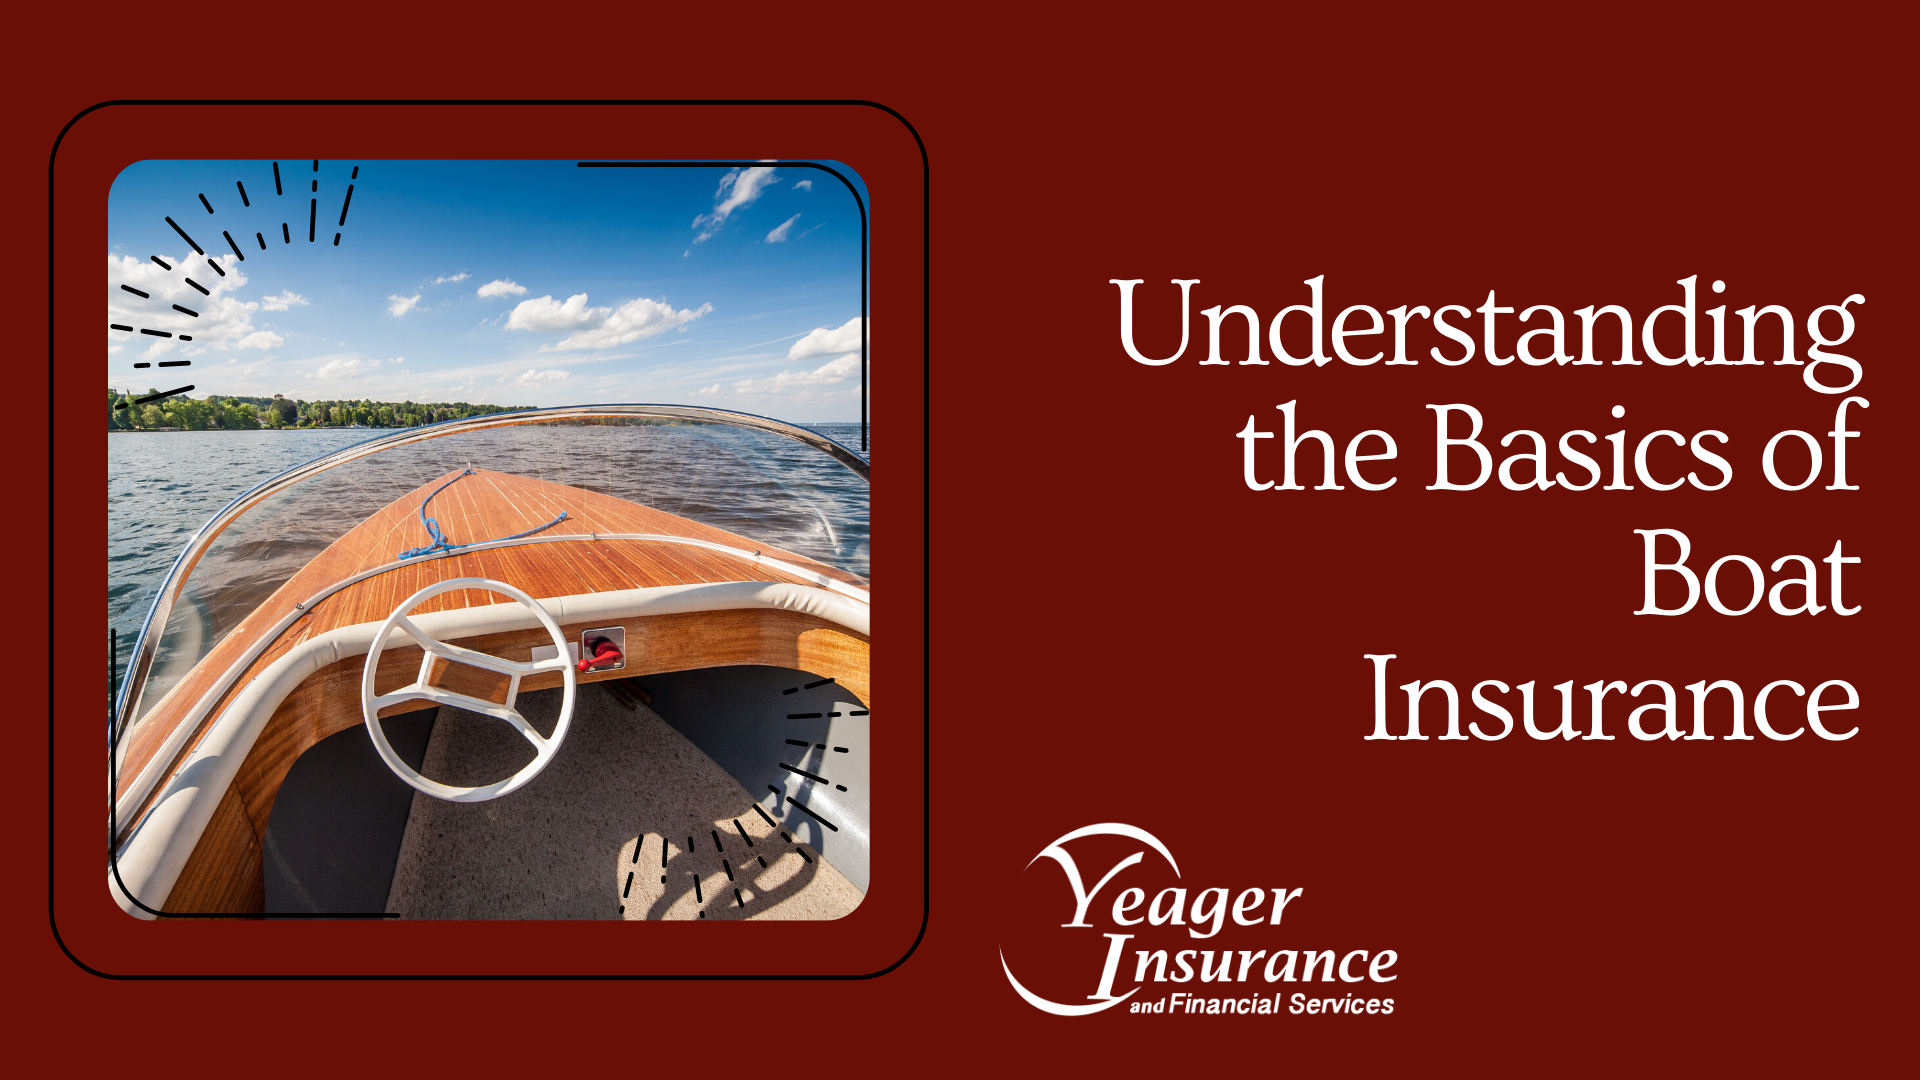 Understanding The Basics of Boat Insurance - Yeager Insurance Blog